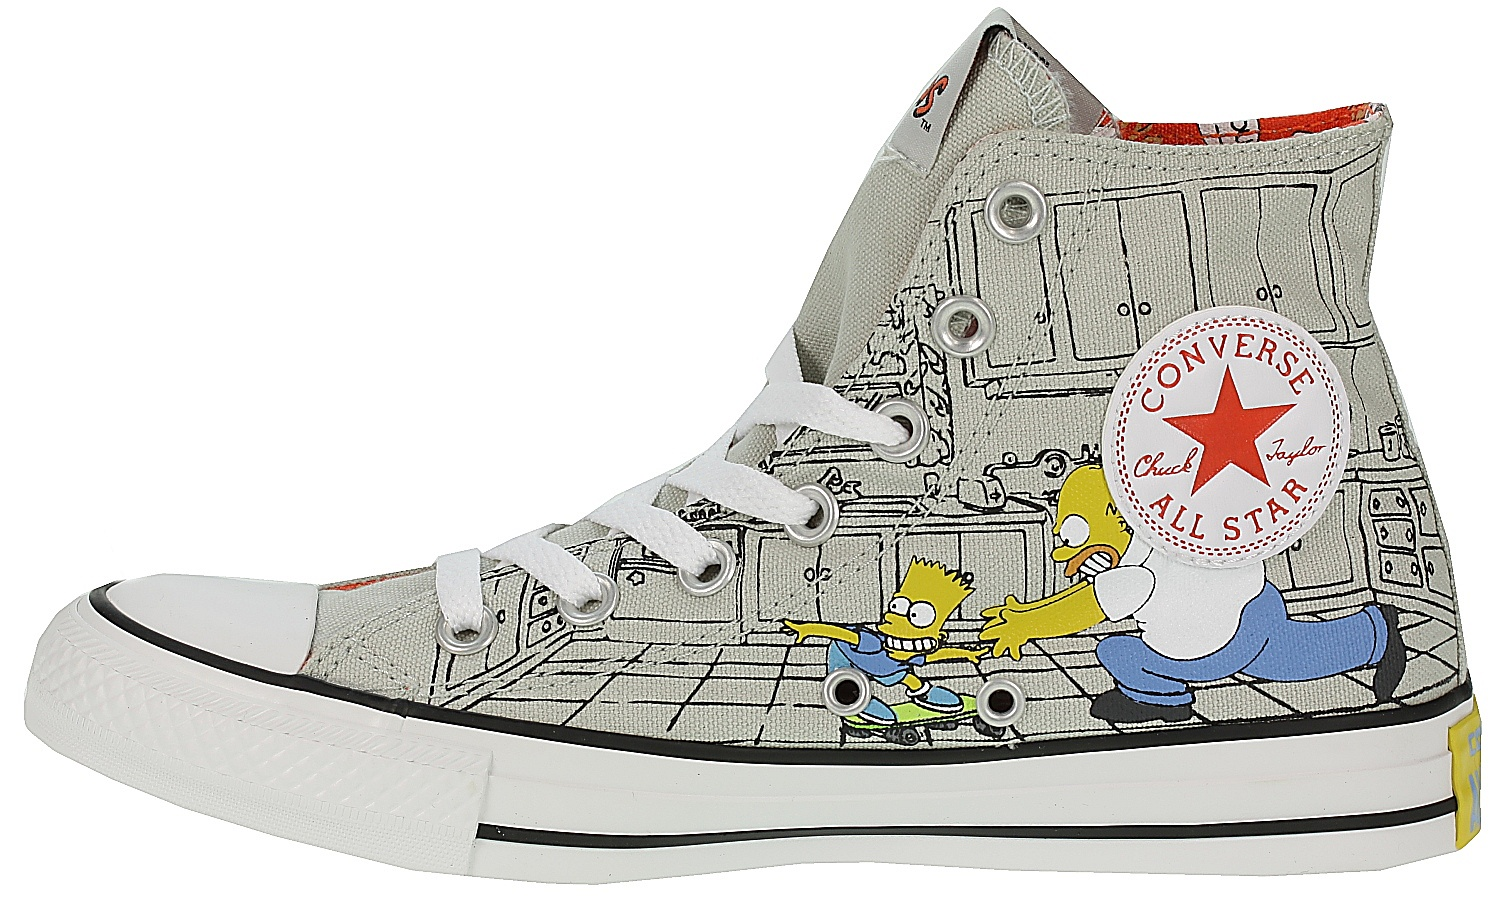 16981bf5a4091 ... topánky Converse Chuck Taylor All Star Hi - 146808/Cloud Gray/Multi/The  ...